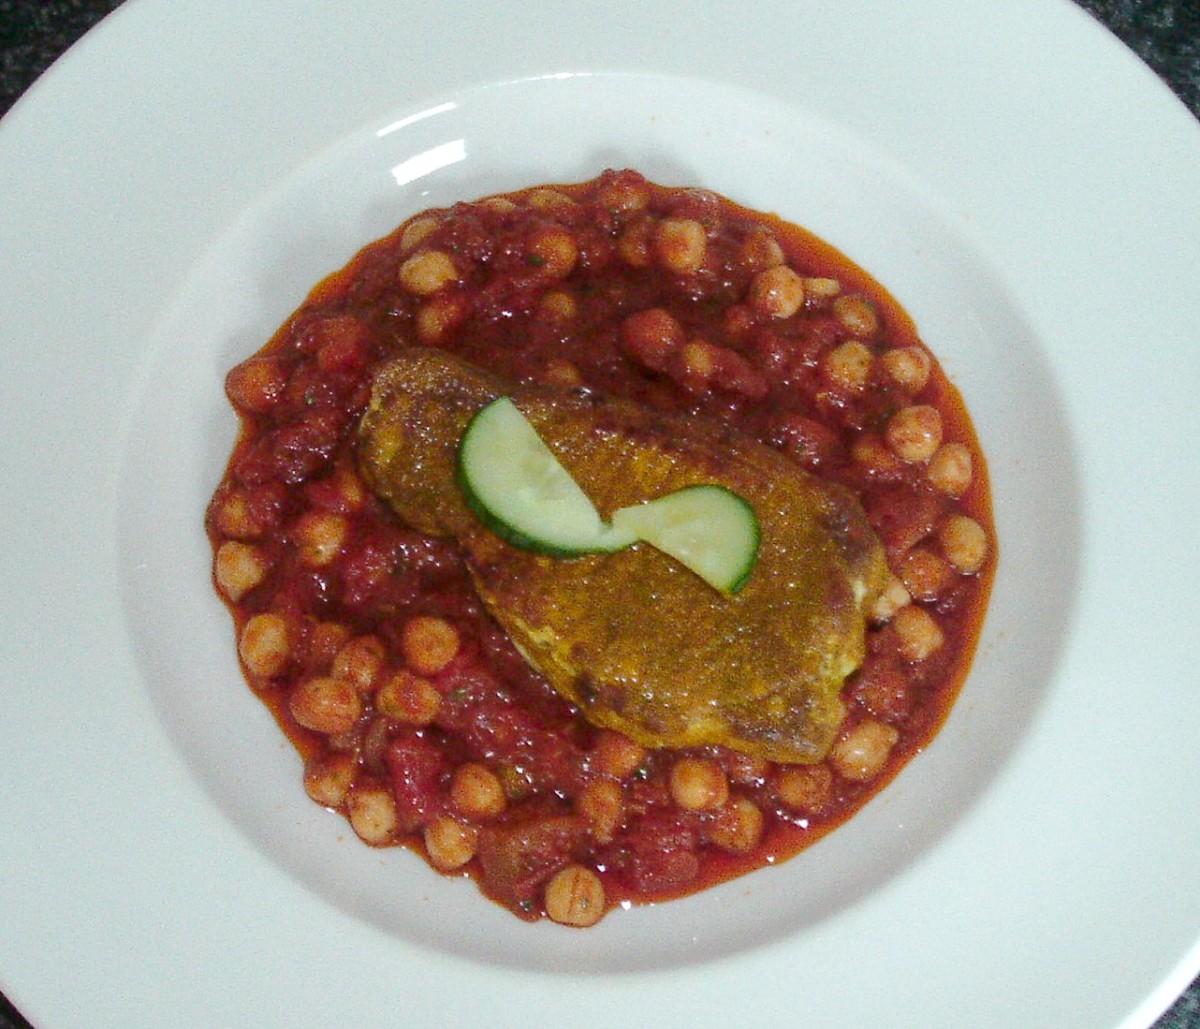 Turmeric spiced fried pork steak on bed of curried chickpeas